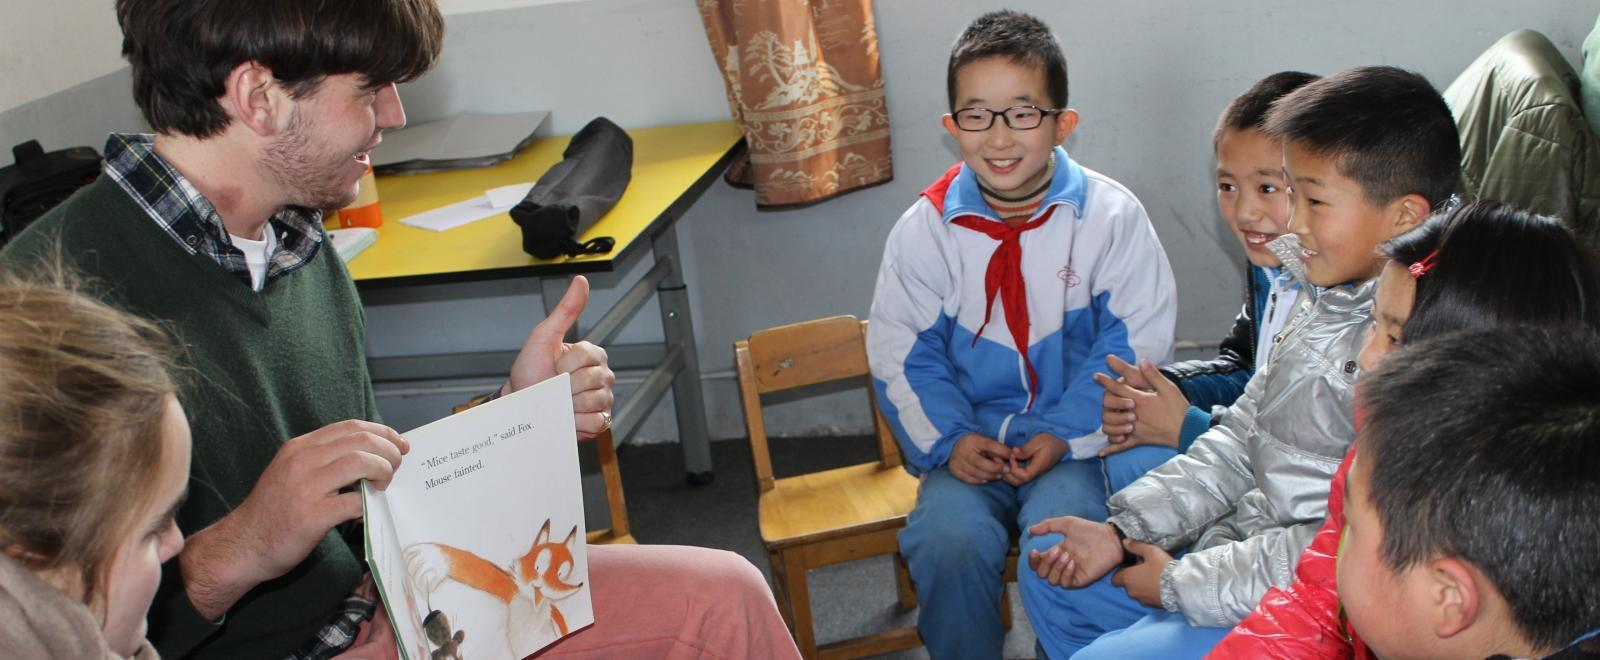 A volunteer reads a book to his students during his teaching work experience in China